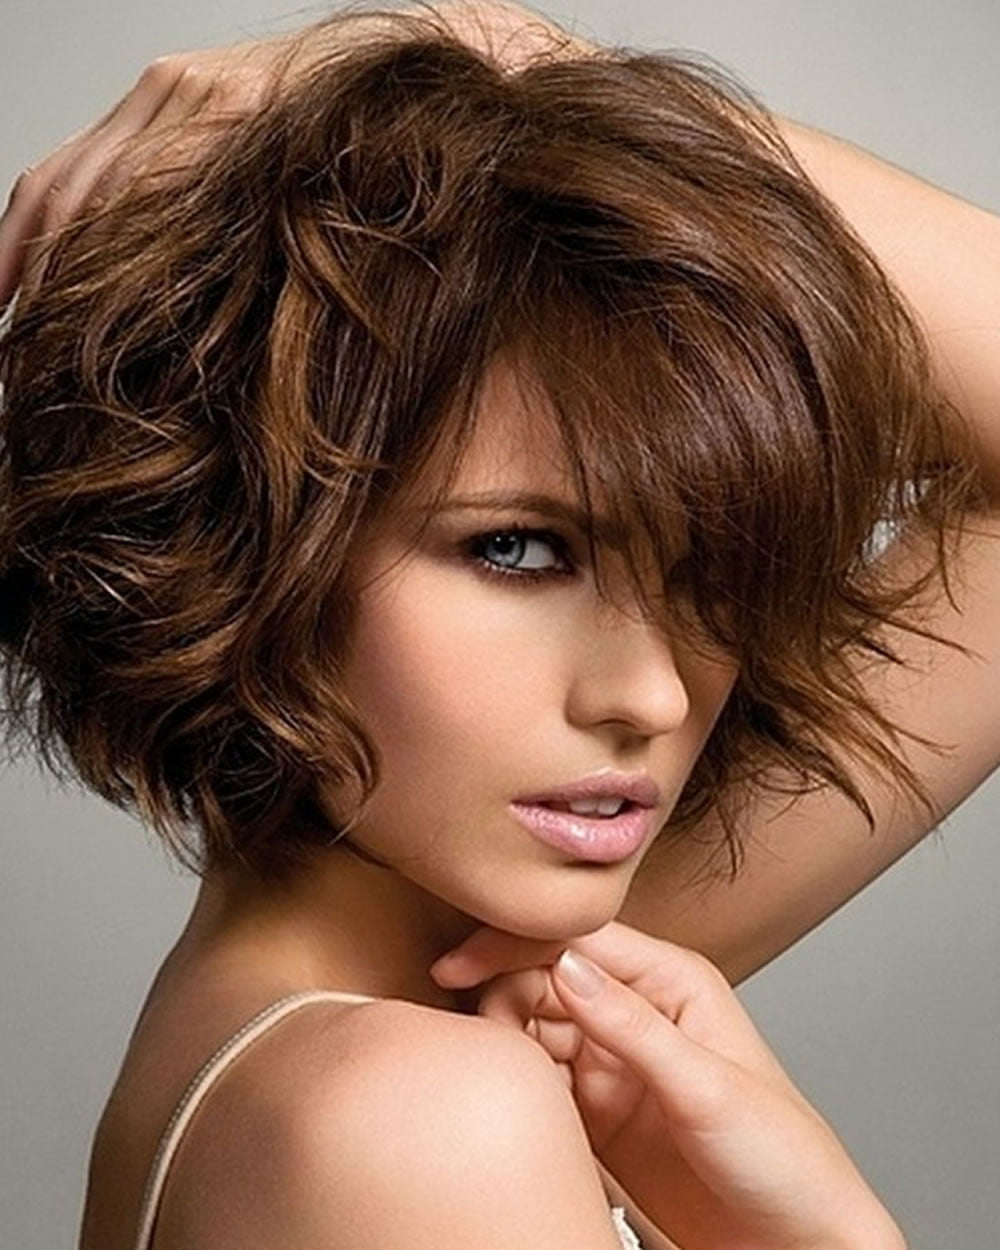 31 Chic Short Haircut Ideas 2018 & Pixie & Bob Hair Inspiration for Ladies - Page 8 - HAIRSTYLES